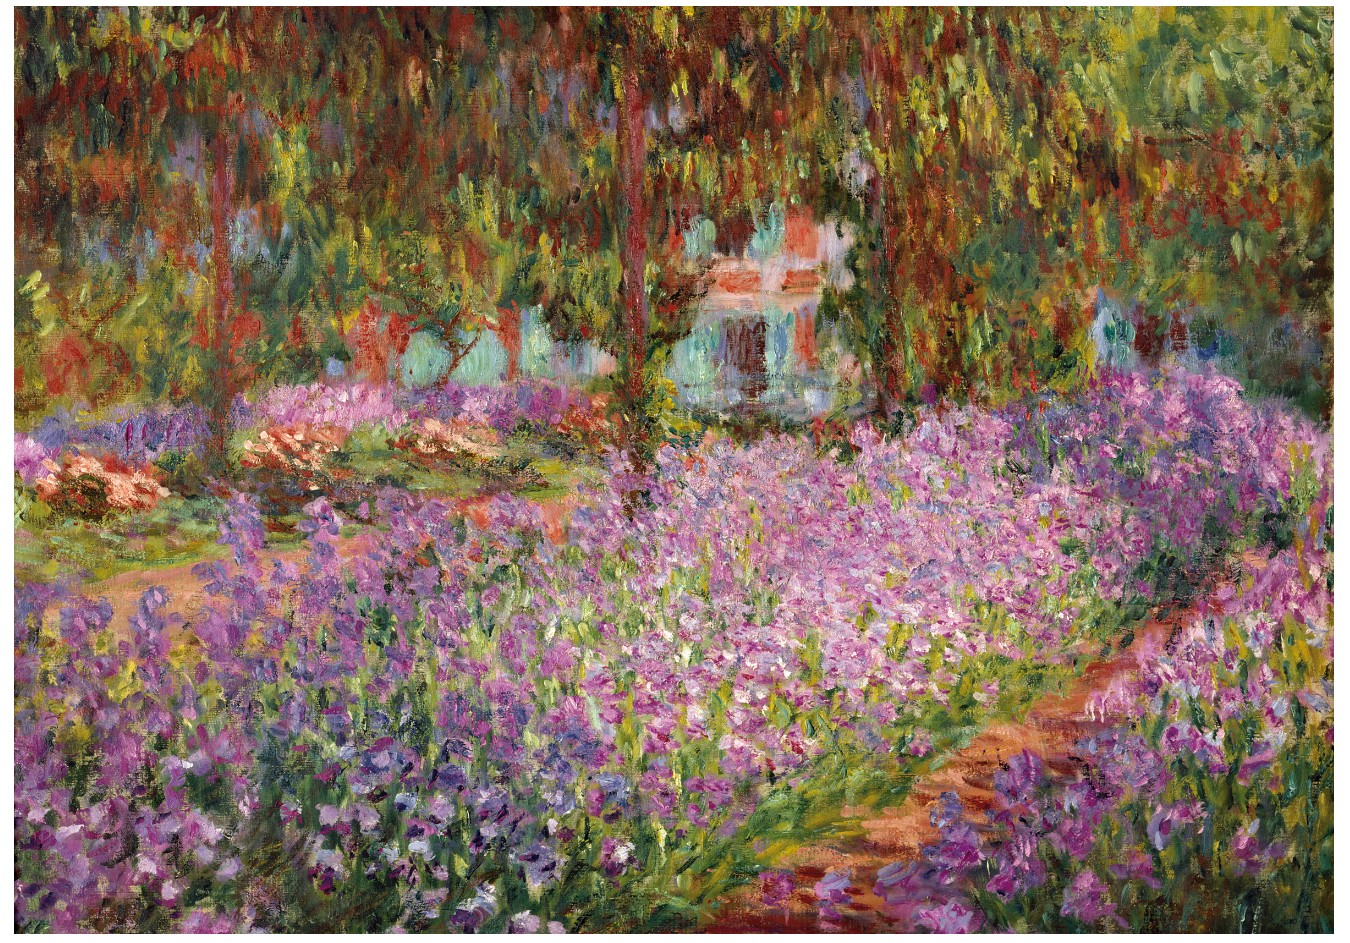 wentworth-holzpuzzle-claude-monet-the-artists-garden-in-giverny-250-teile-puzzle-wentworth-74100